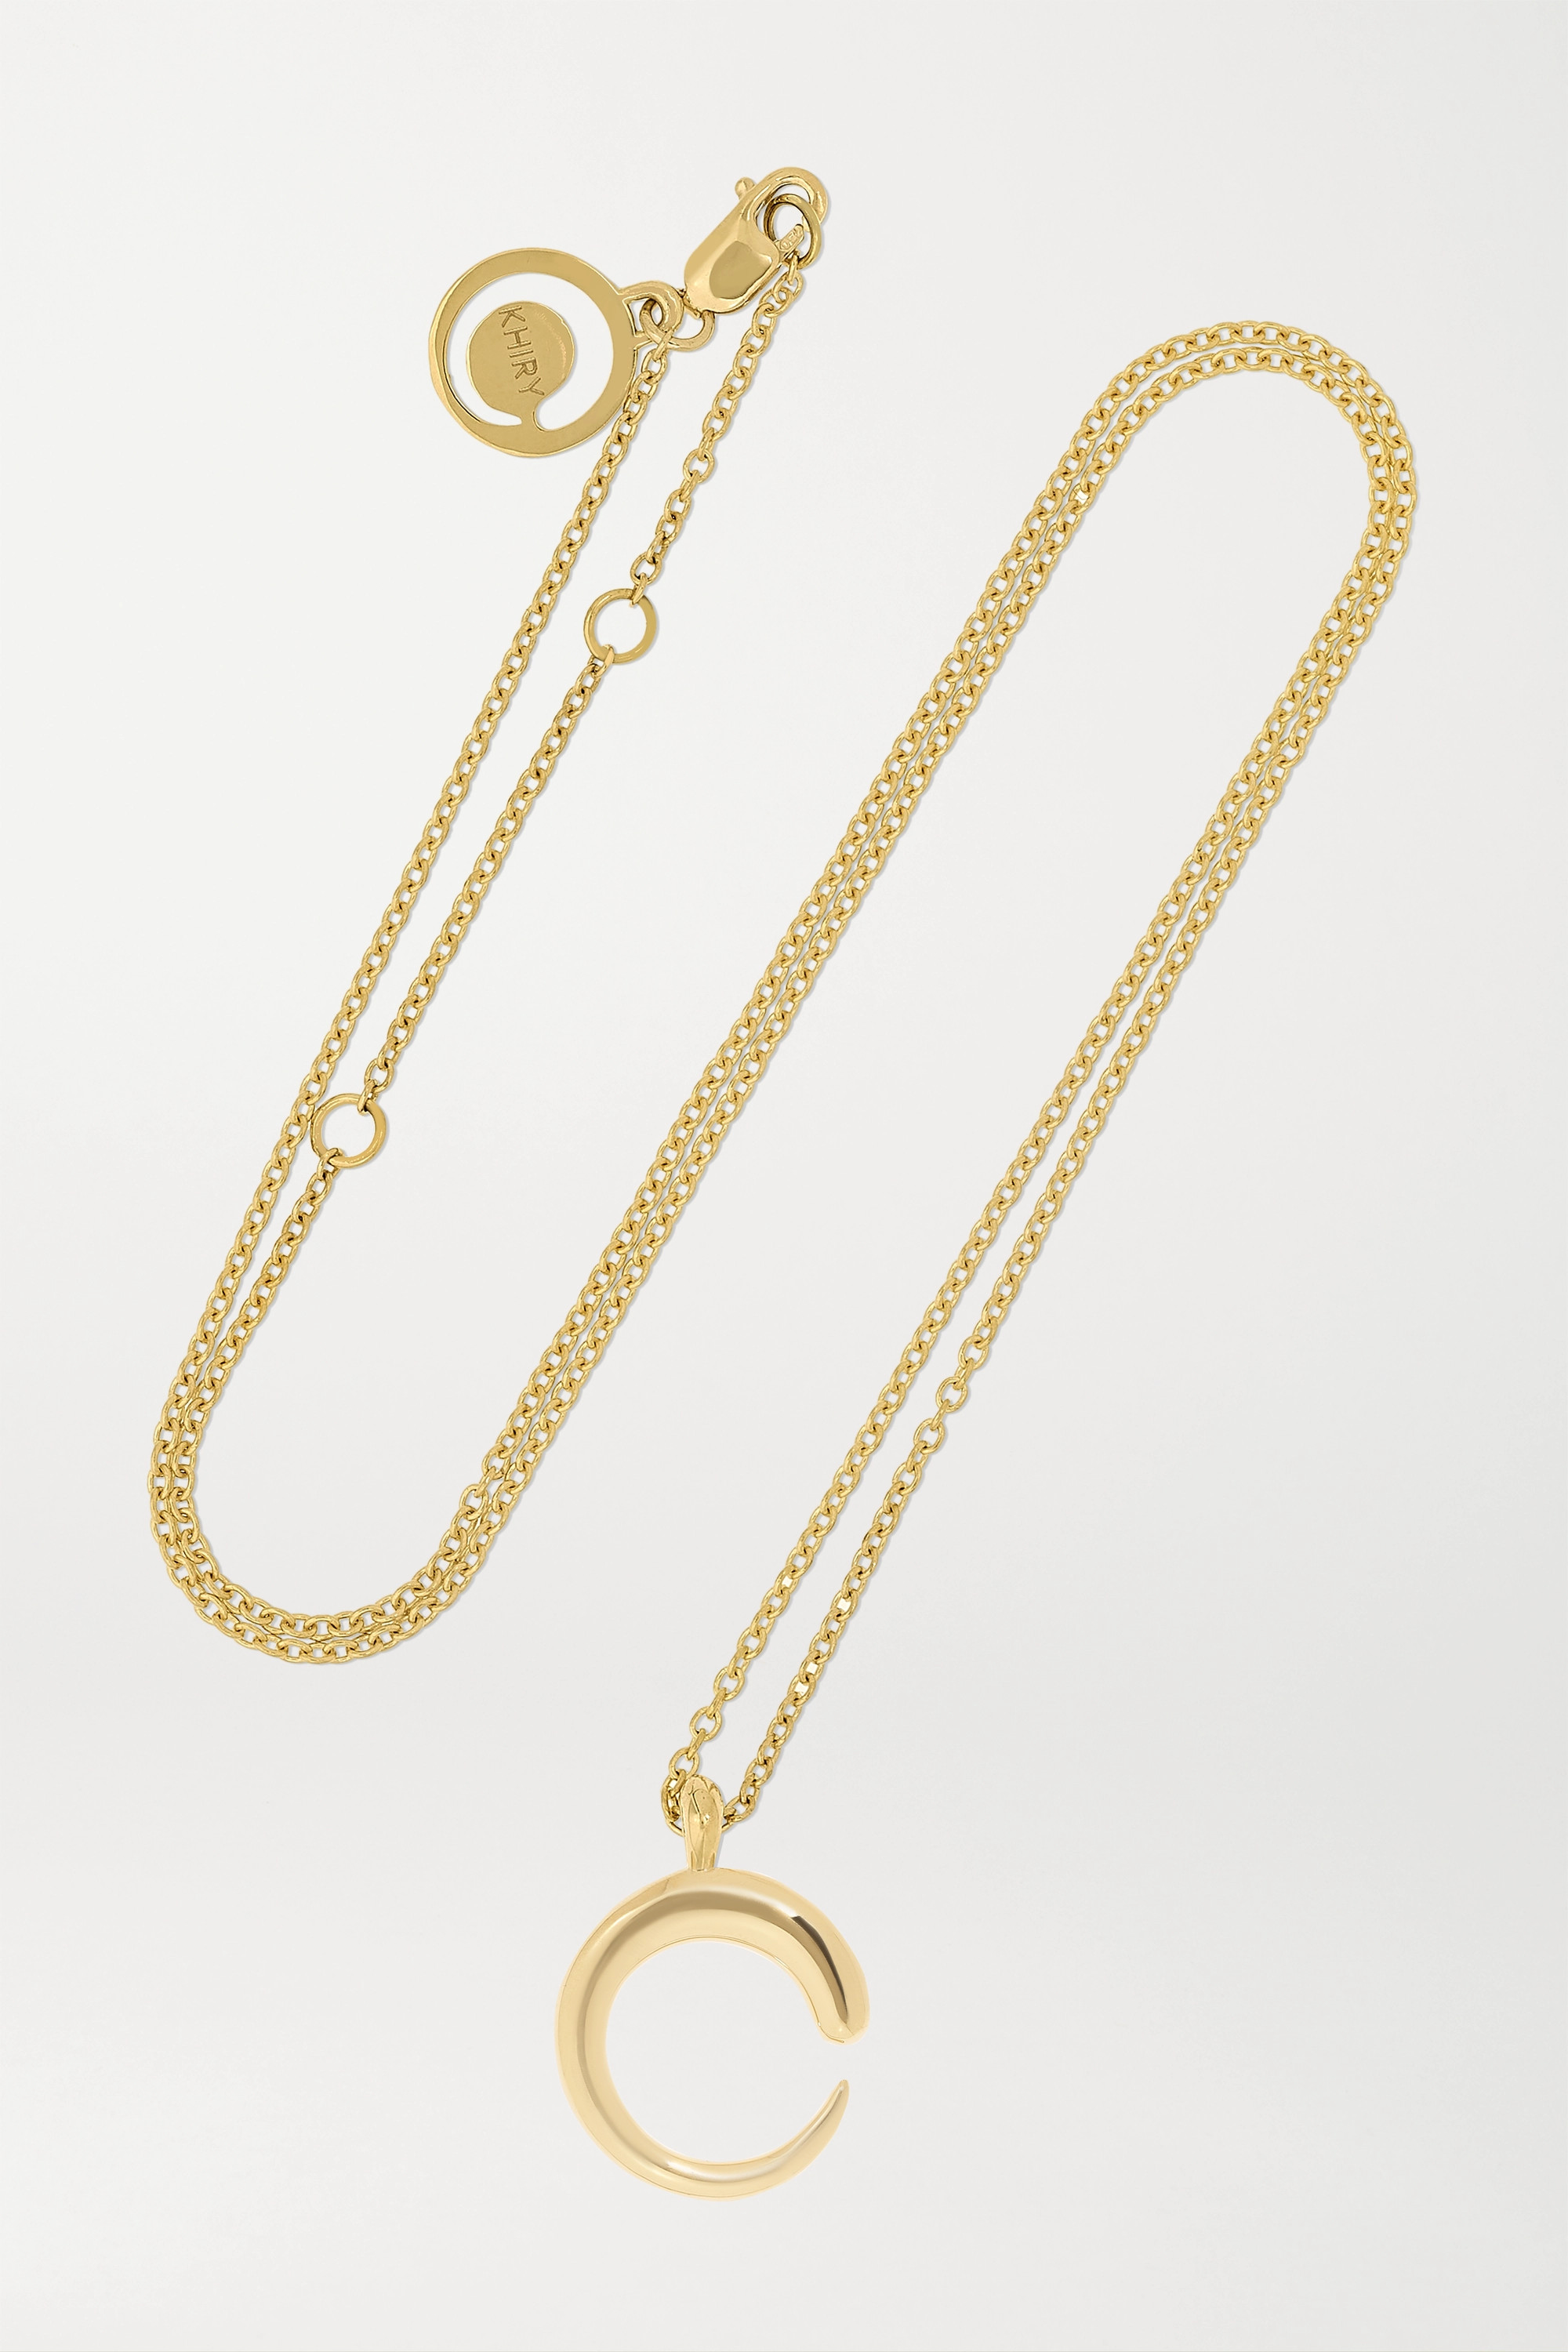 KHIRY Fine Khartoum II 18-karat gold necklace